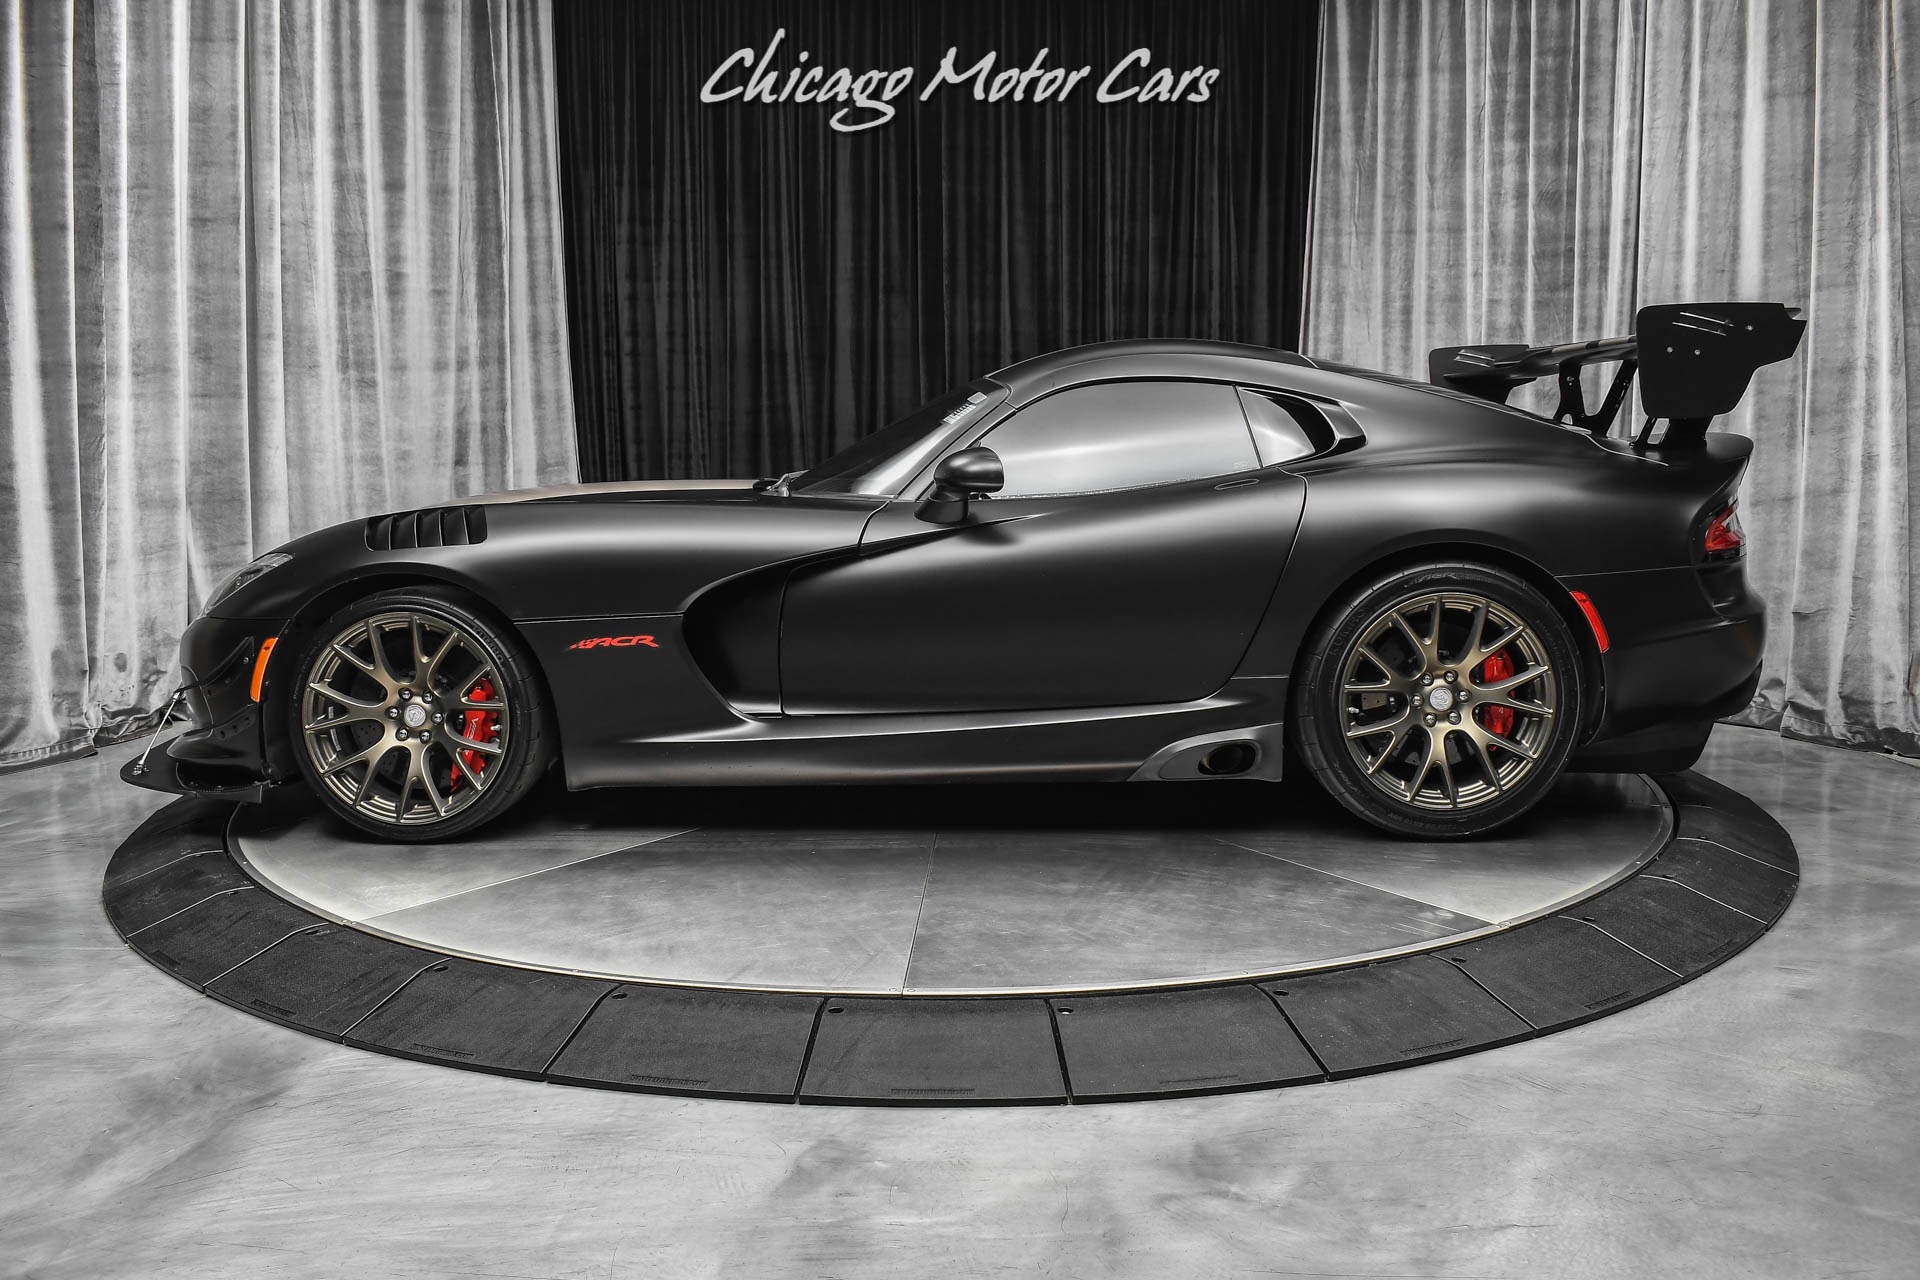 Used-2017-Dodge-Viper-GTC-ACR-Extreme-Aero-VERY-SPECIAL-FACTORY-BUILD--00001